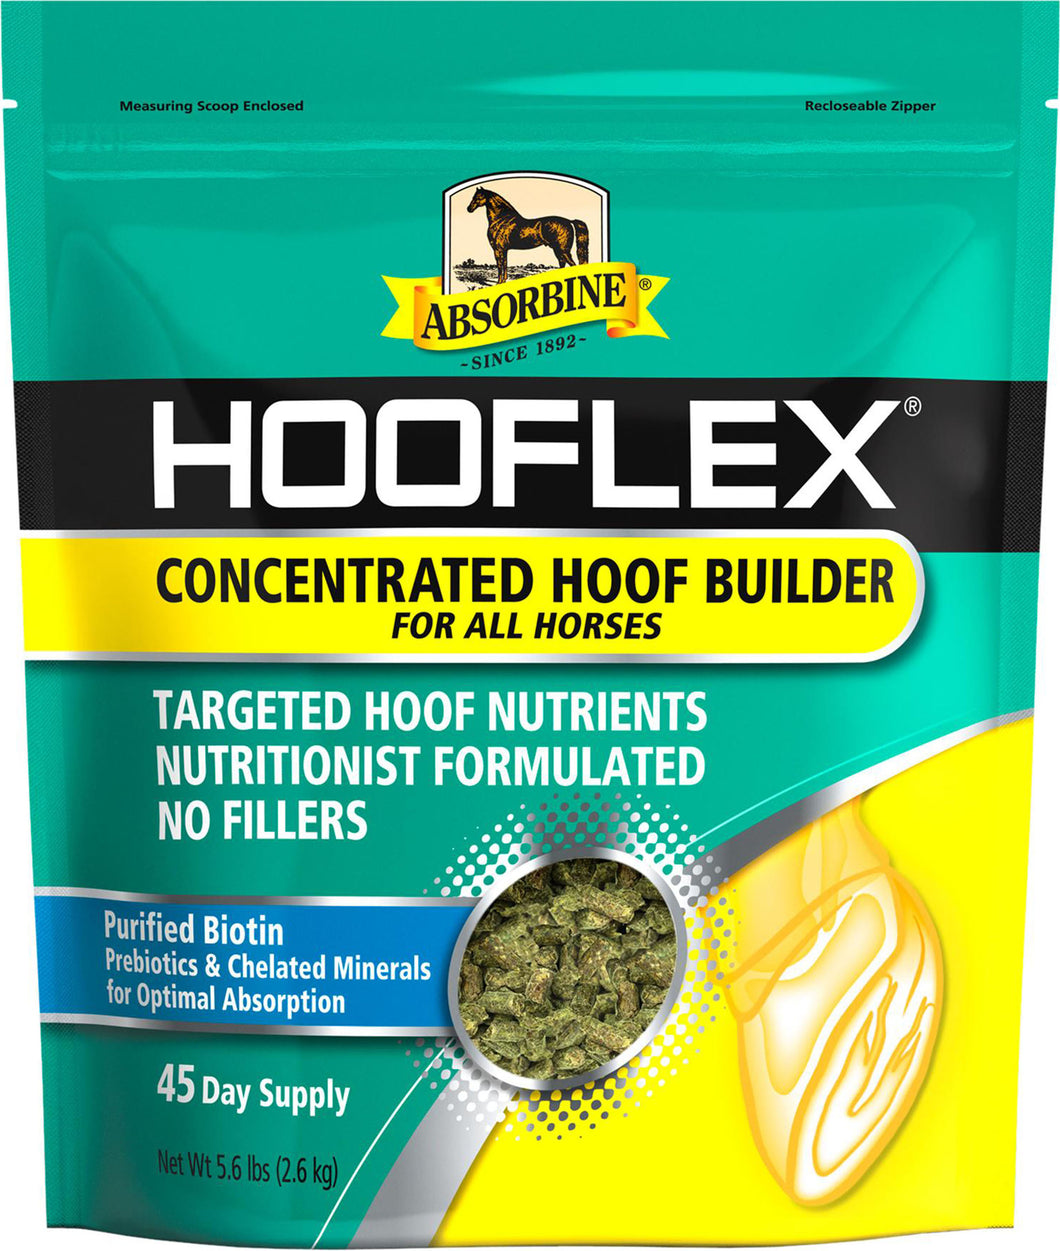 Absorbine Hooflex Concentrated Hoof Builder